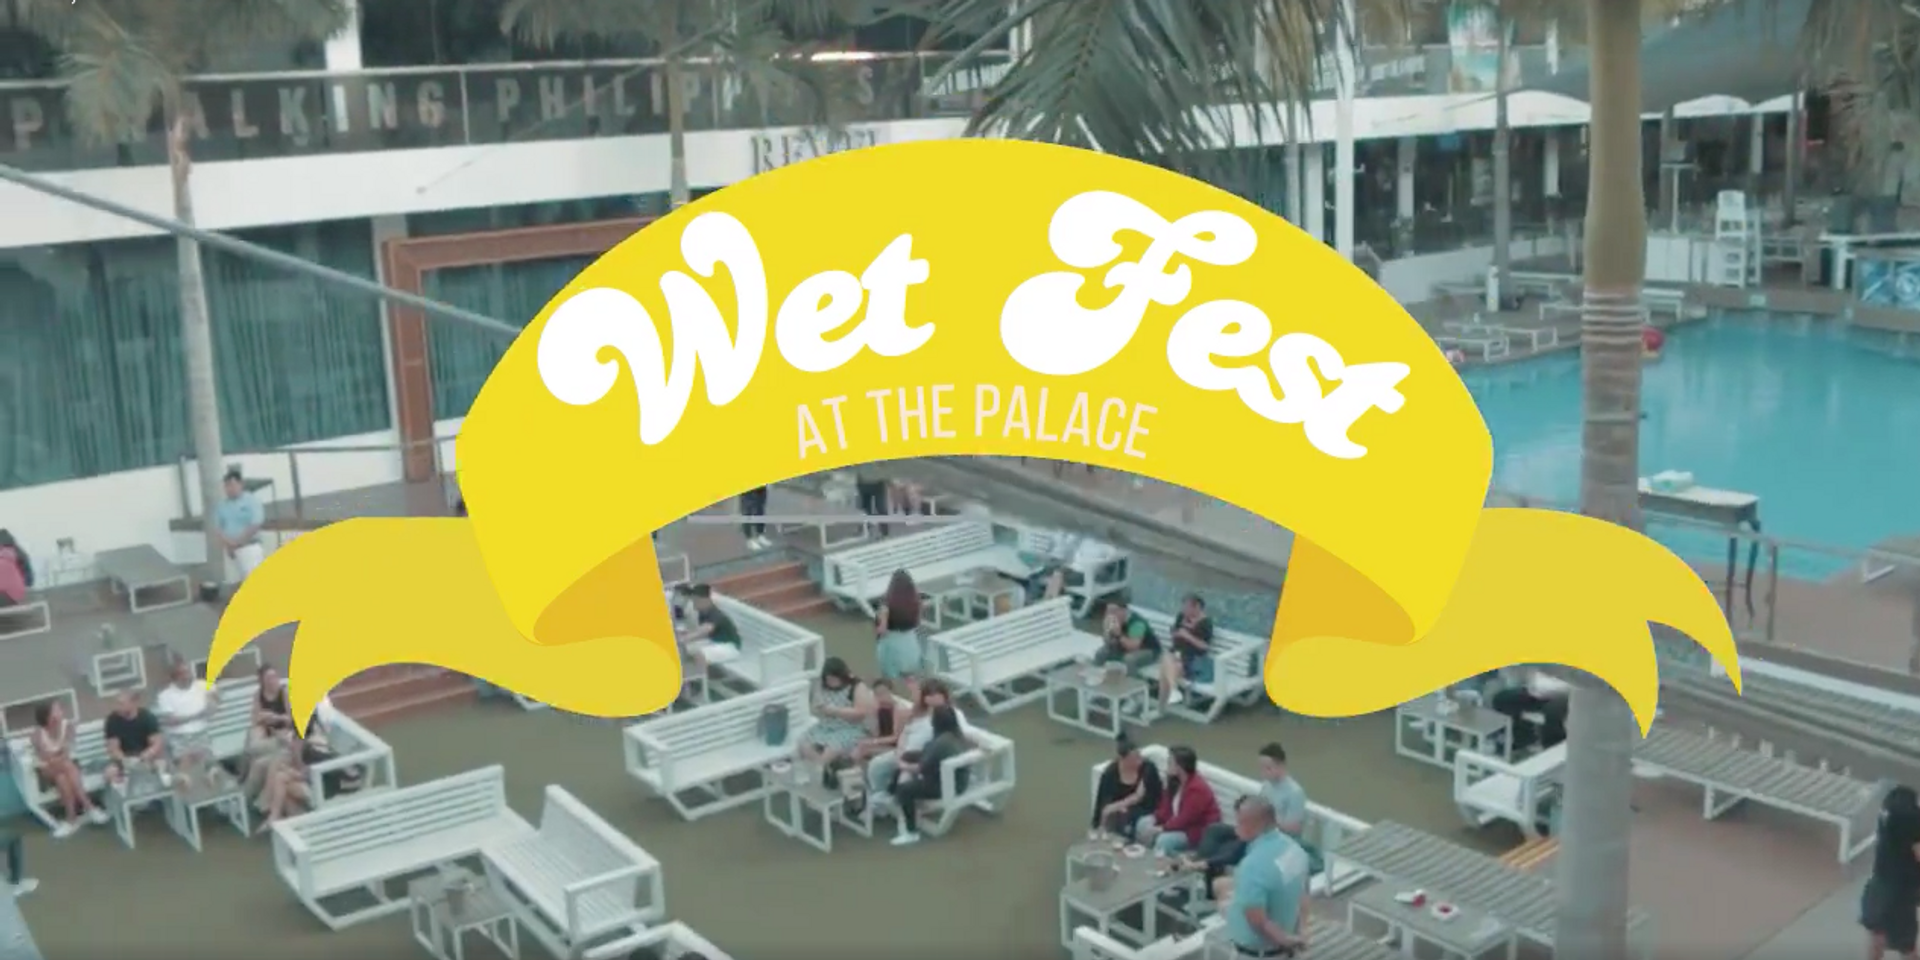 WATCH: Apartel, Sinosikat?, Tom's Story and more indie acts take over the Palace Pool Club for Homonym's Wet Fest 3.0